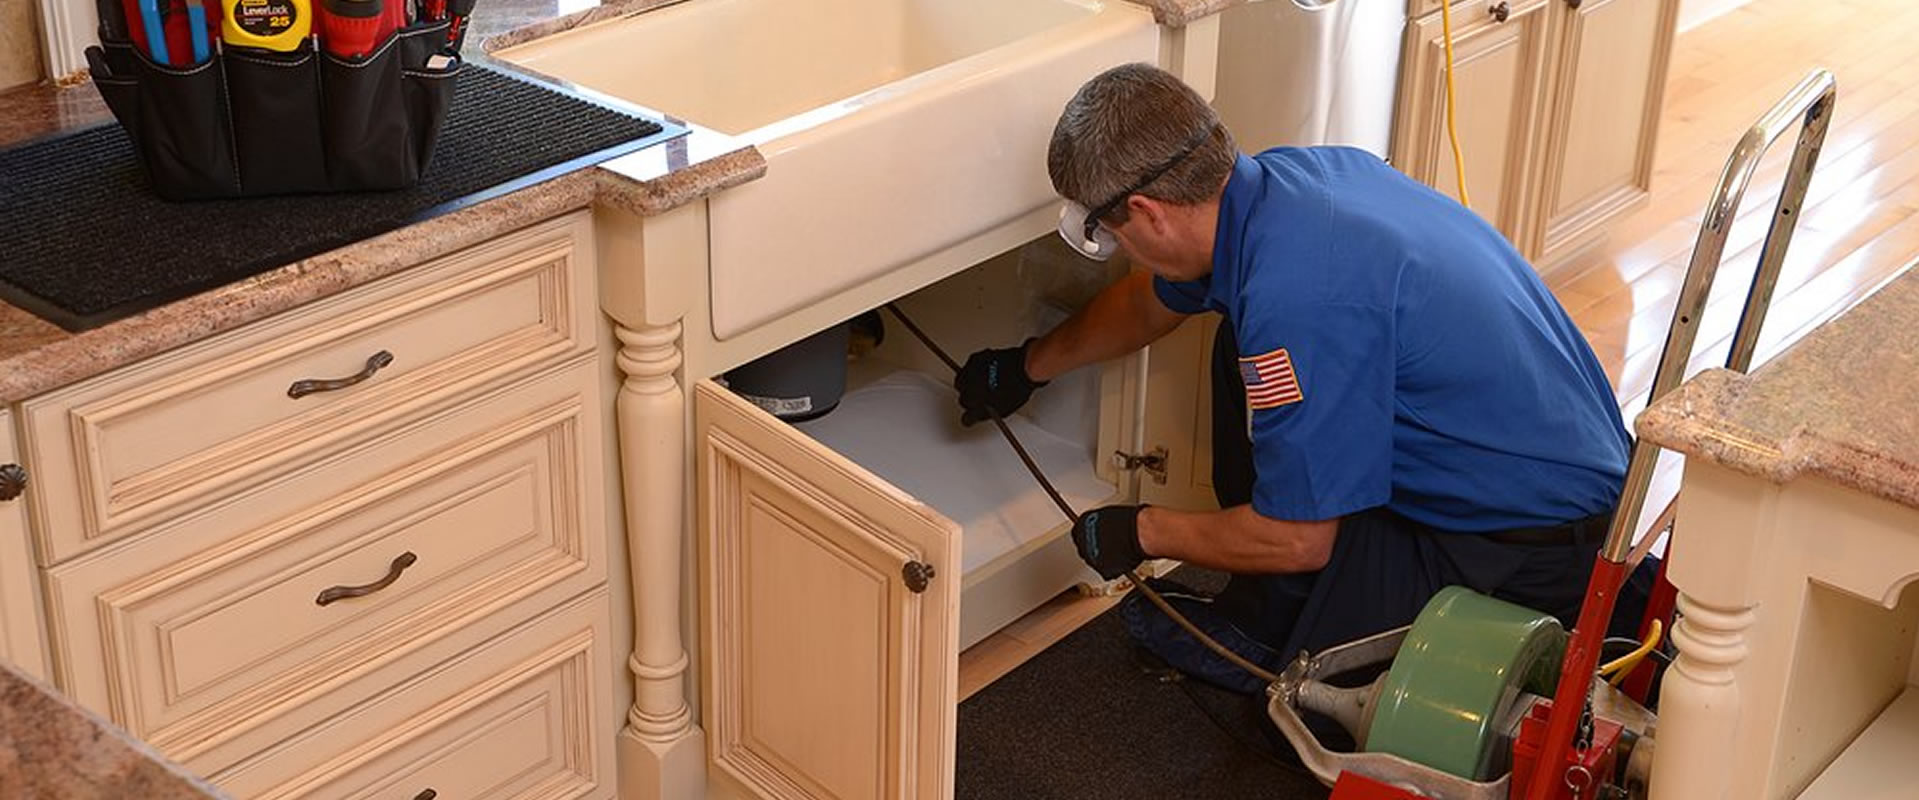 Drain Cleaning in Carefree